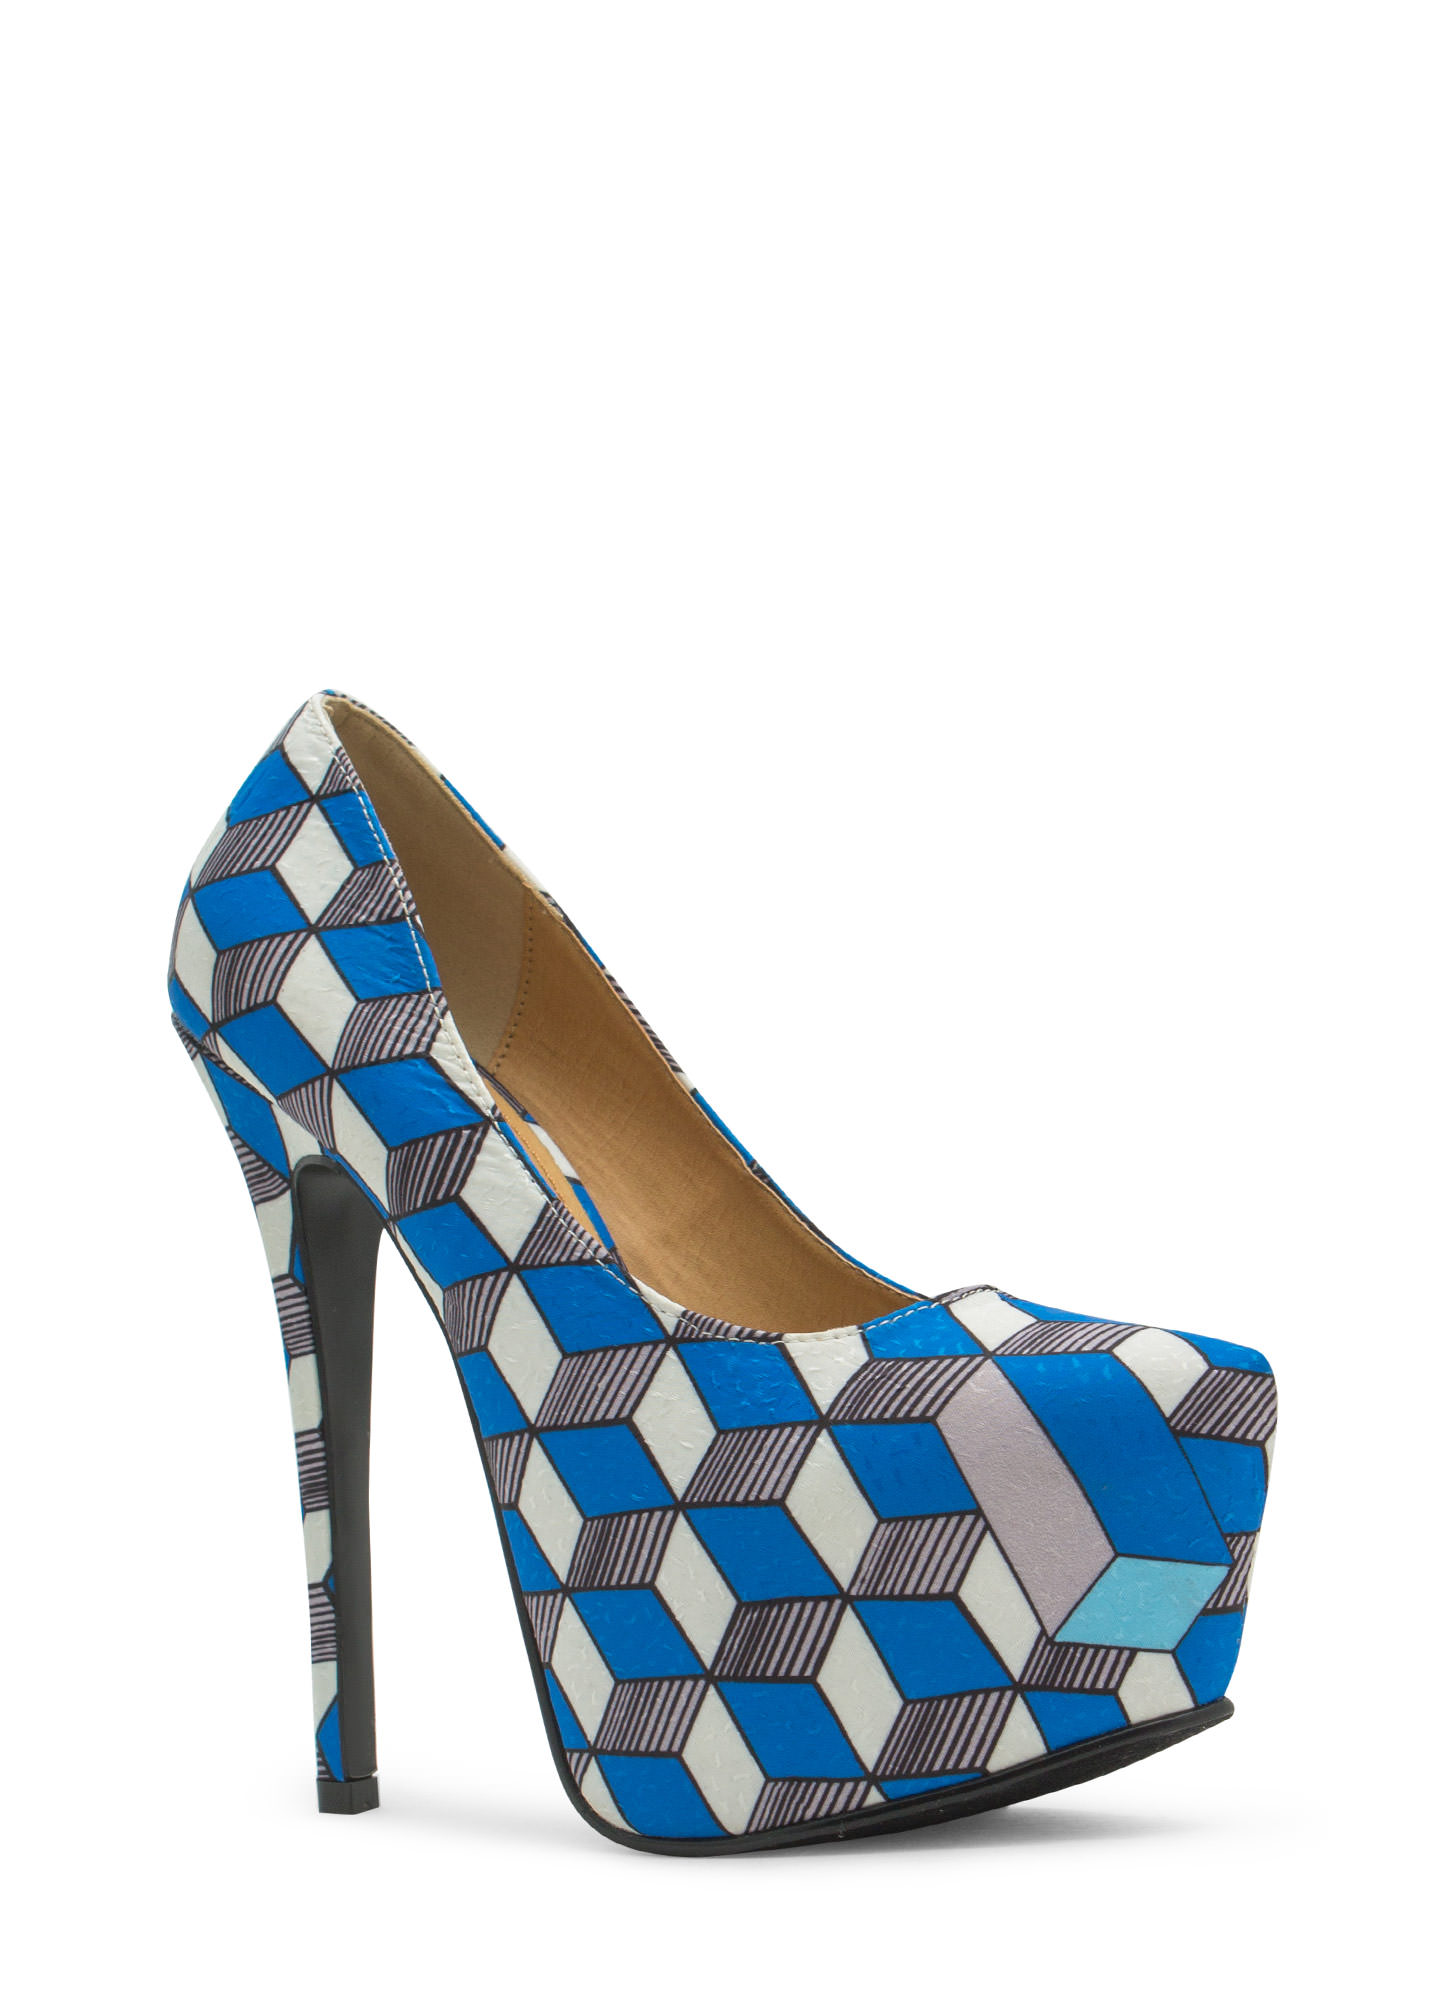 Three Dimensional Geo Platform Heels BLUE (Final Sale)